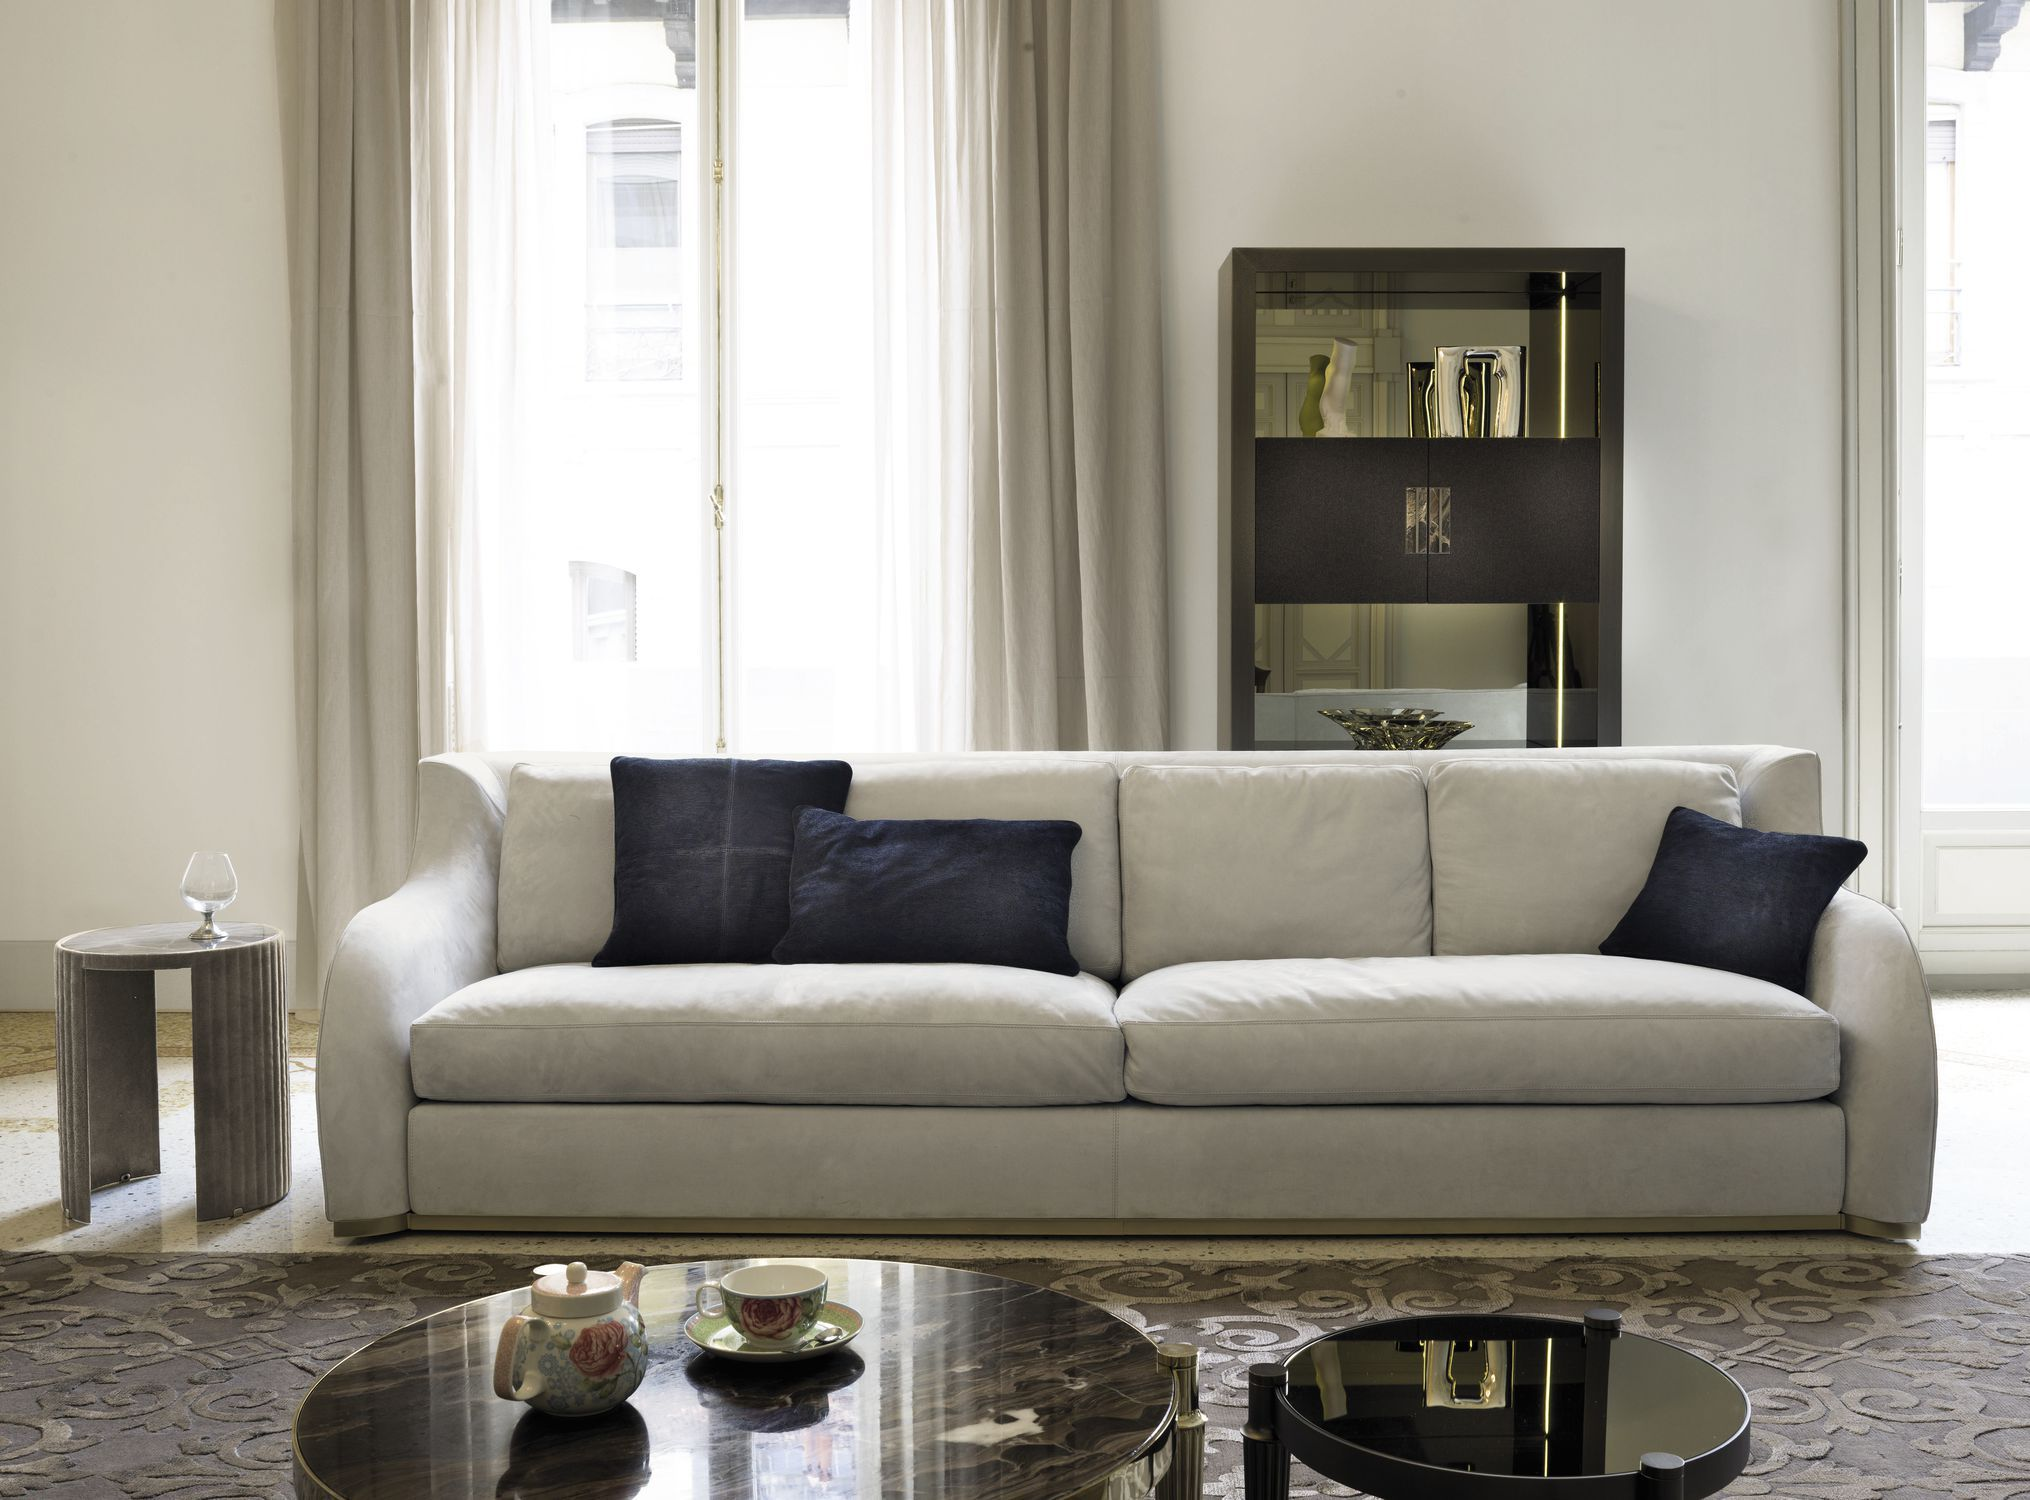 Contemporary sofa leather fabric 4 seater REY W 548 by